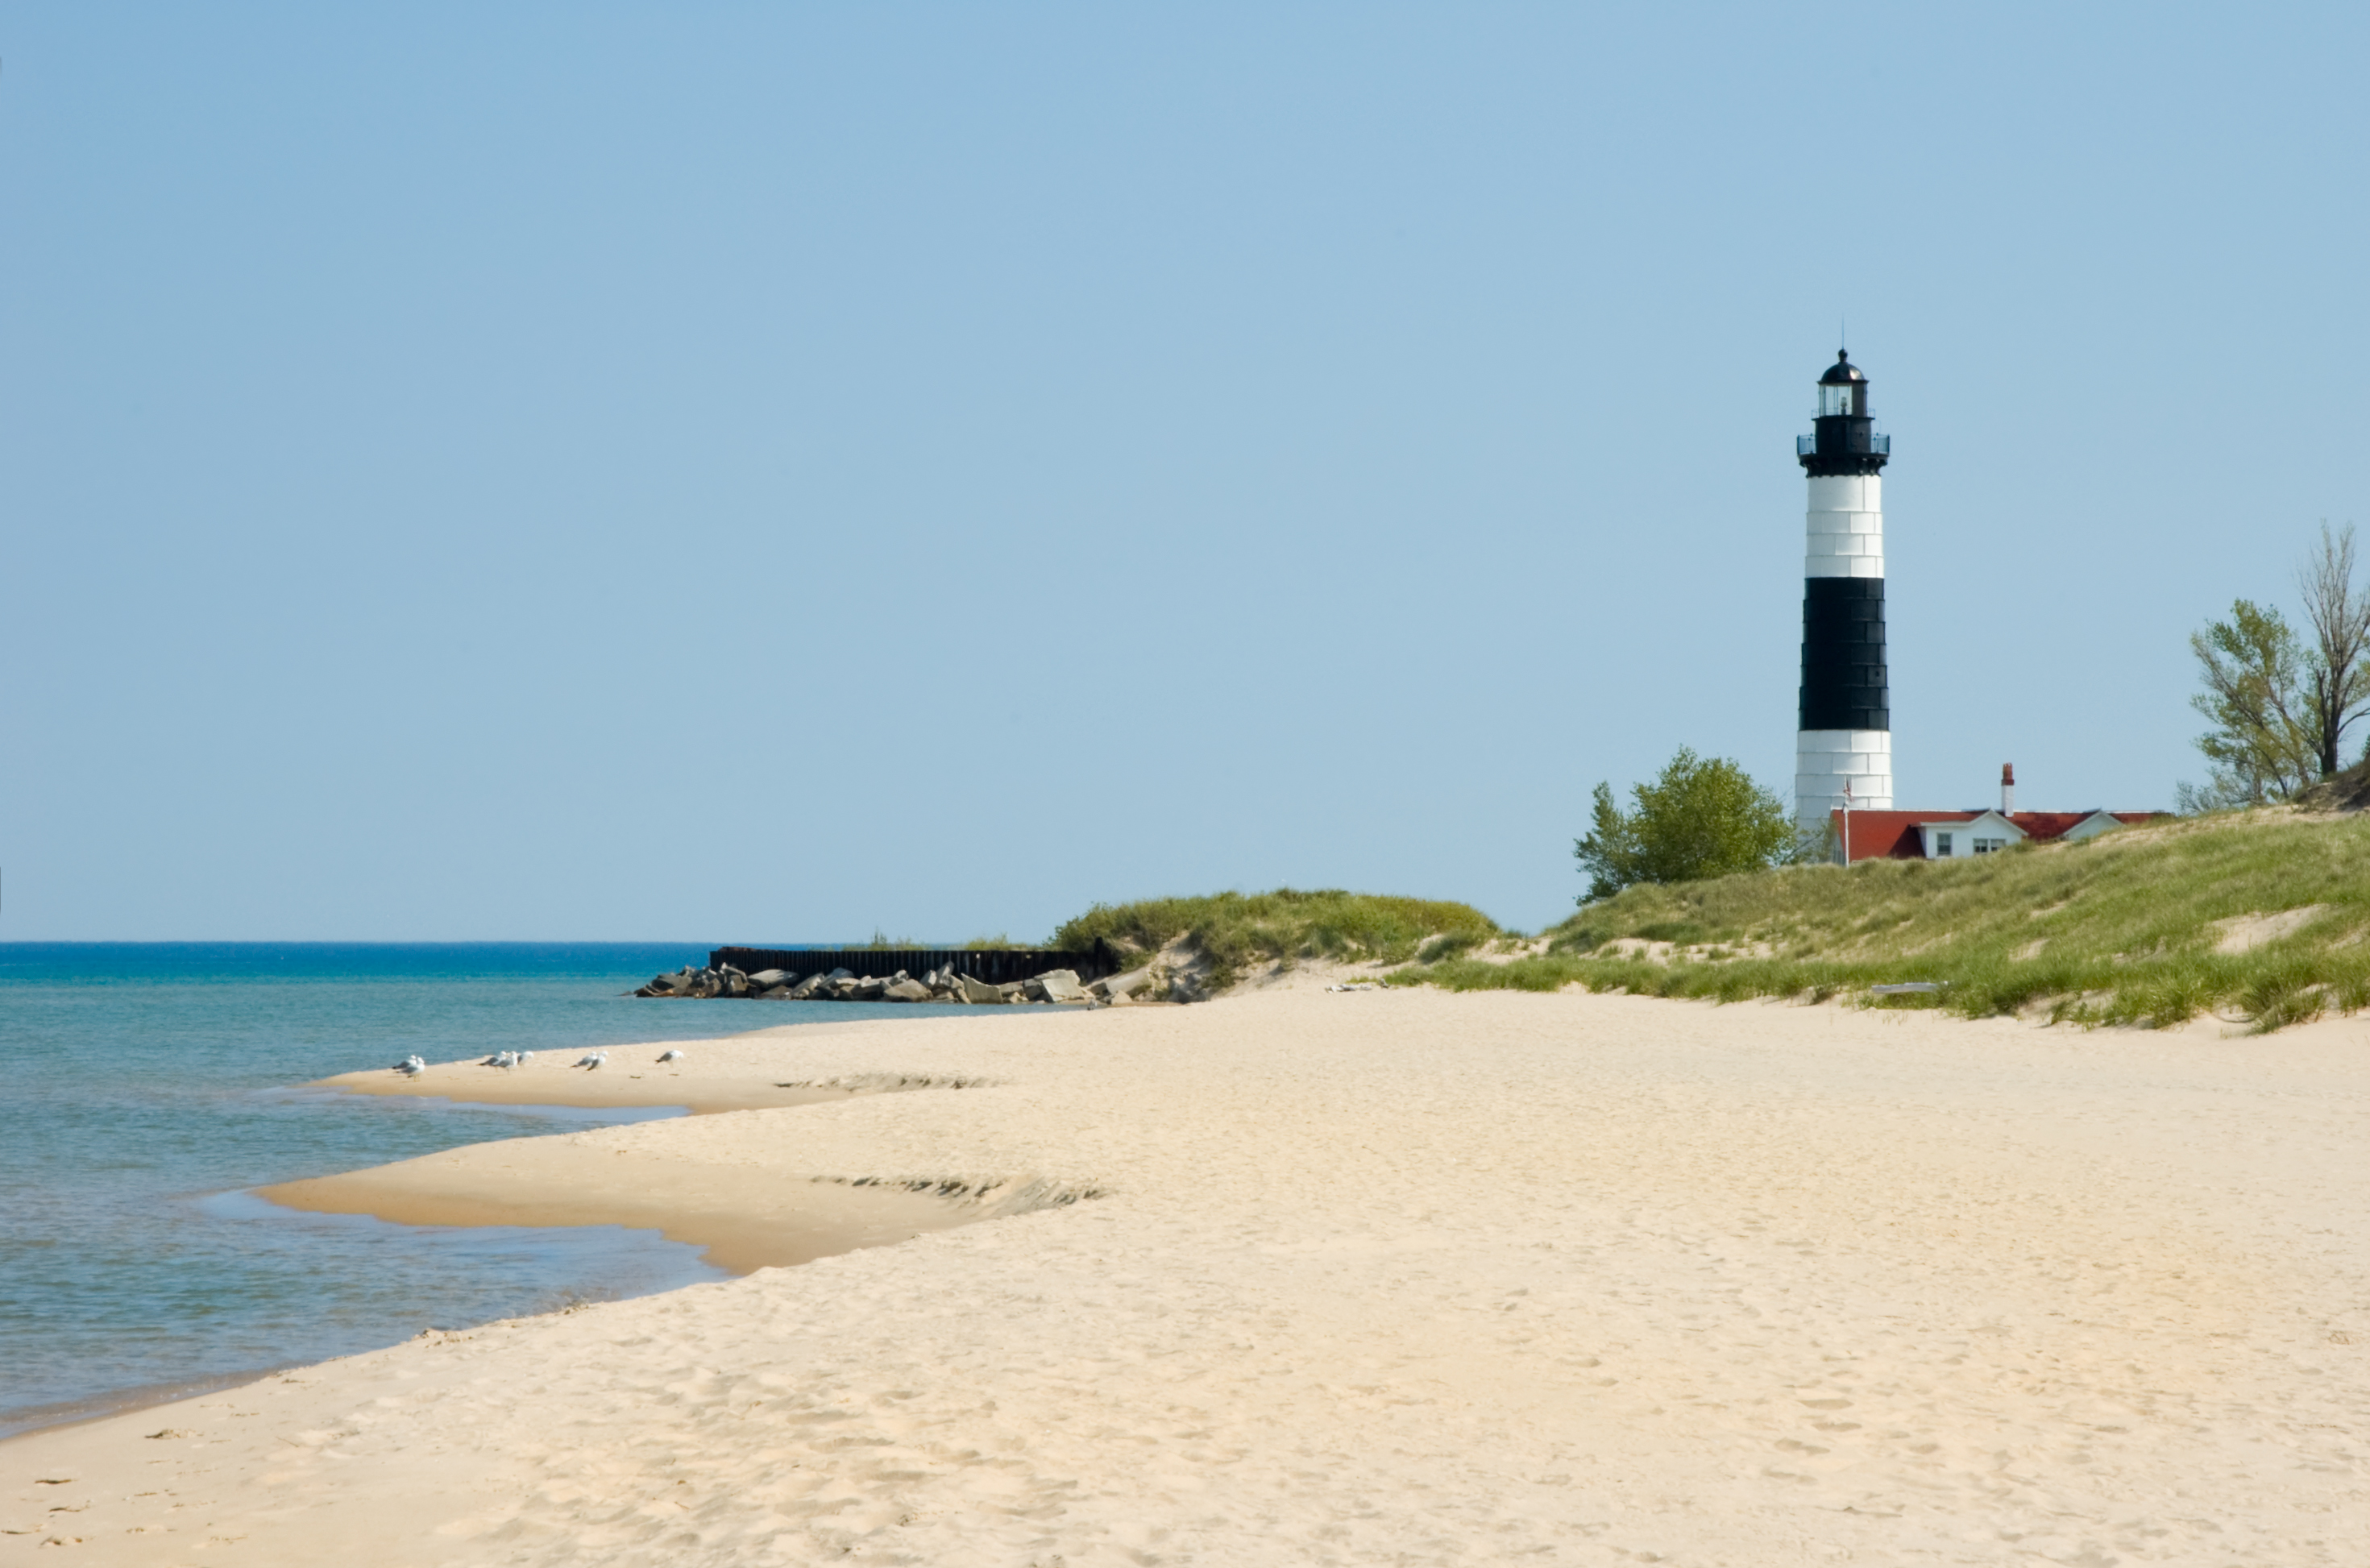 Lighthouse and Beach Sand Along Shoreline, Michigan Great Lakes Scenery